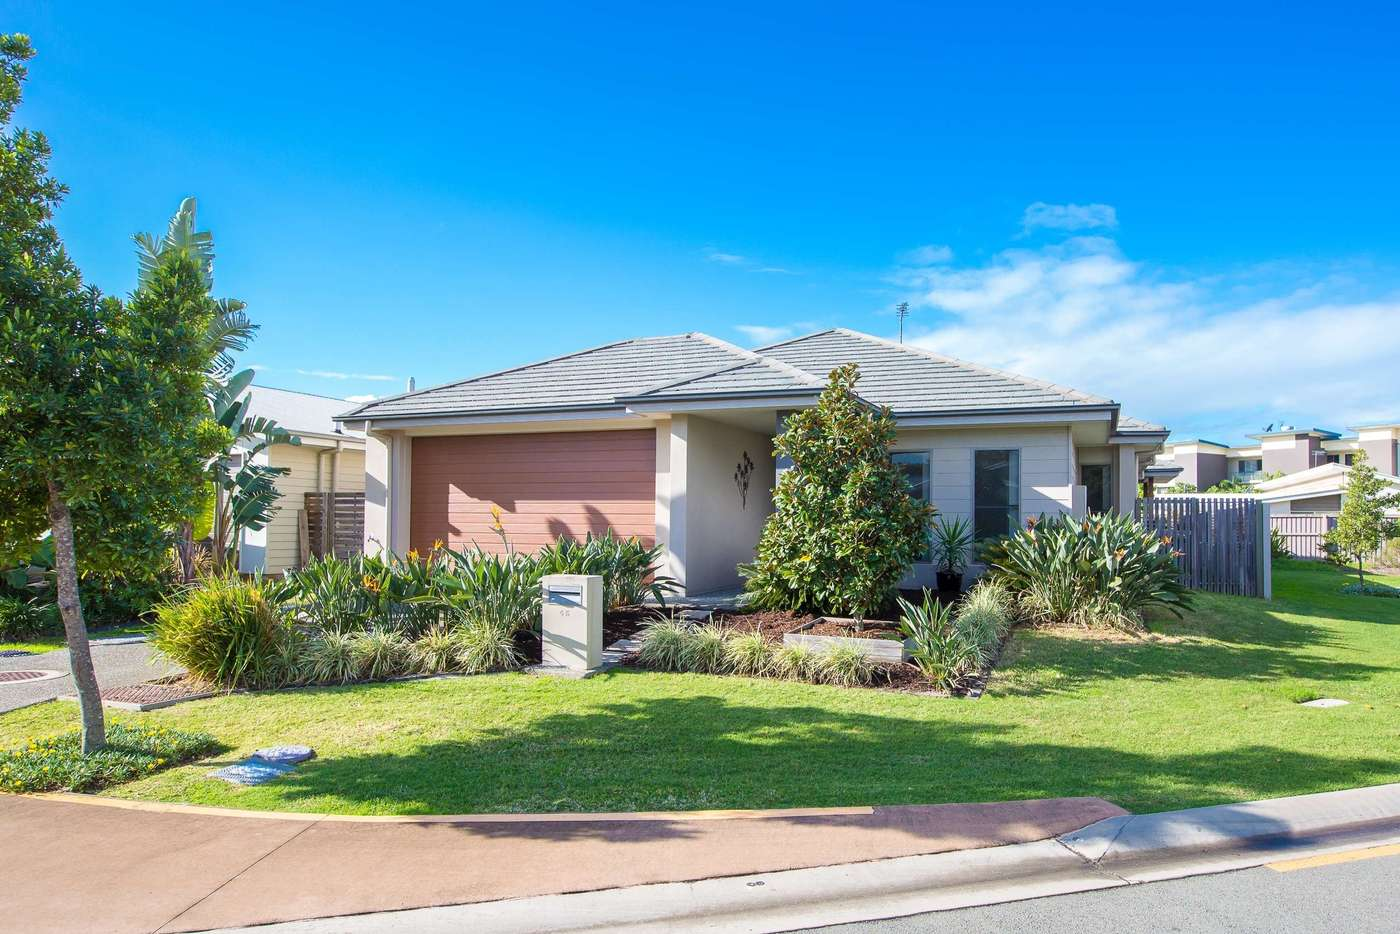 Main view of Homely house listing, 45 Azure Way, Hope Island QLD 4212